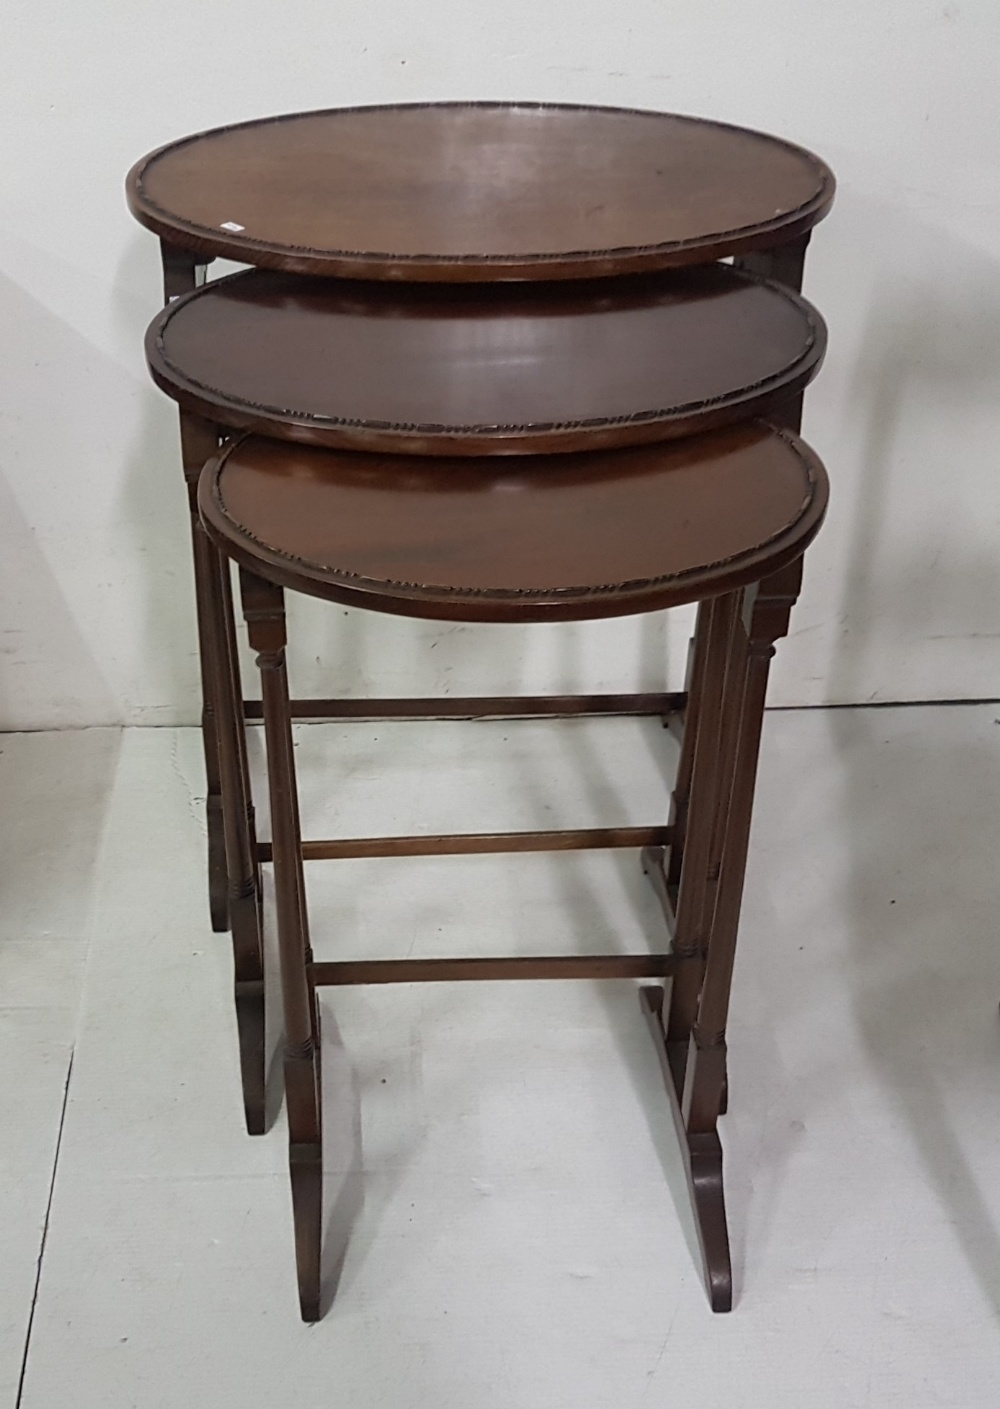 Lot 20 - Nest of 3 oval-shaped Tables, on spindle legs